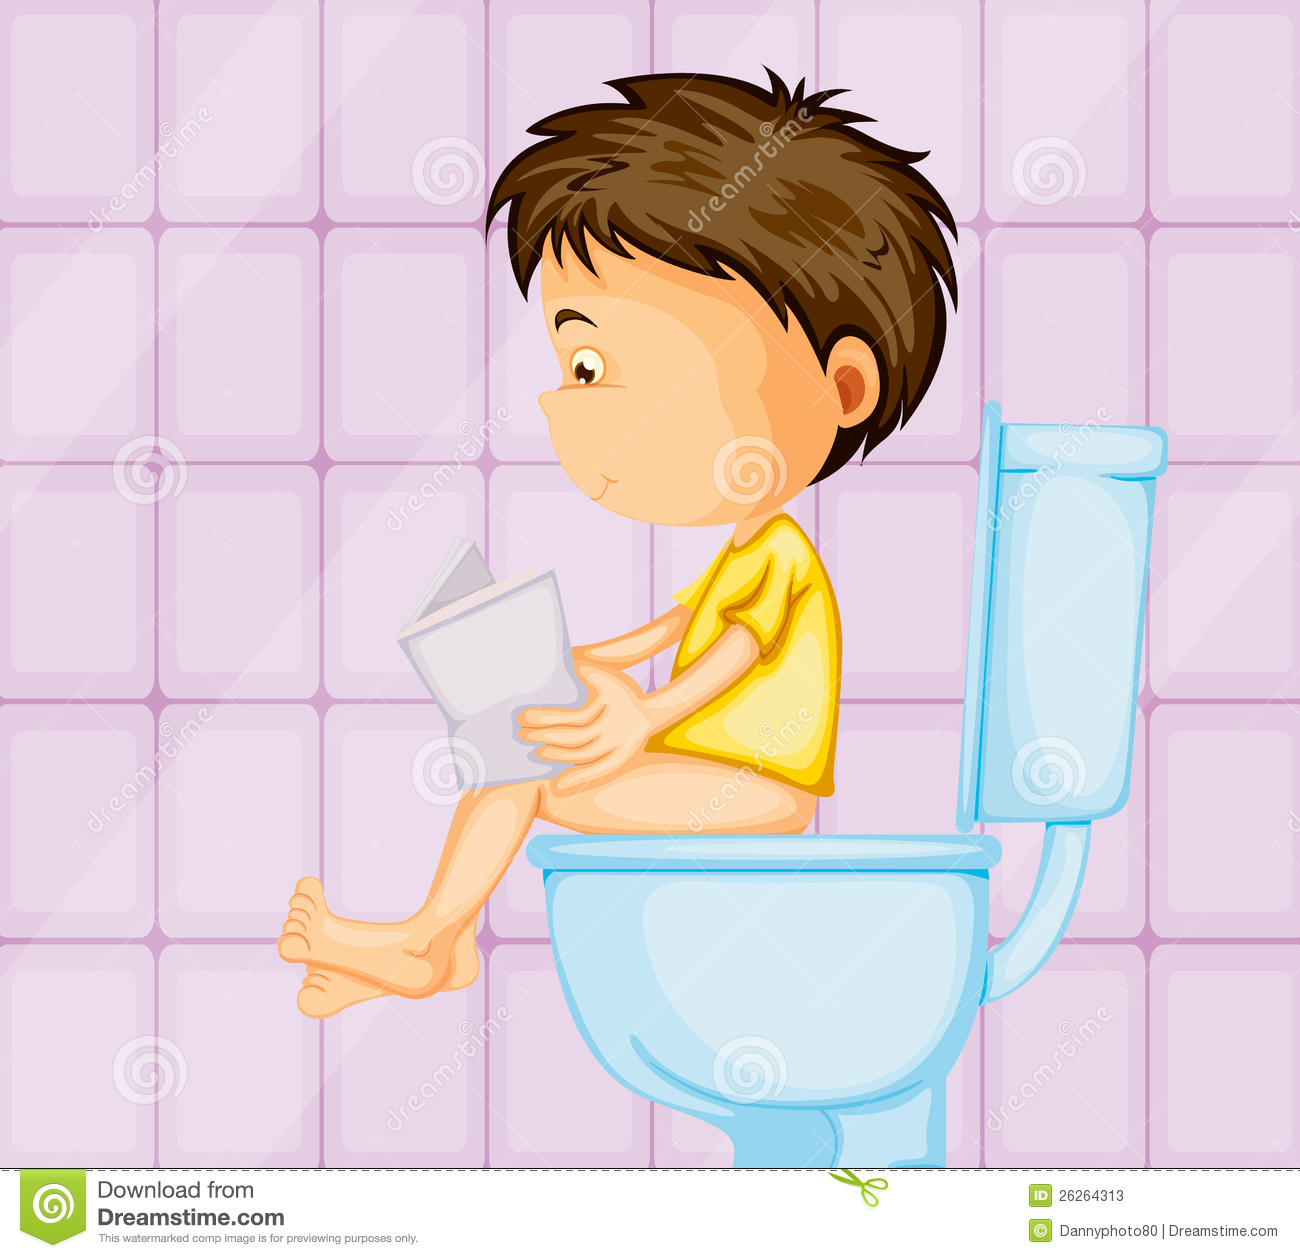 A Boy Sitting On Commode Stock Photos - Image: 26264313